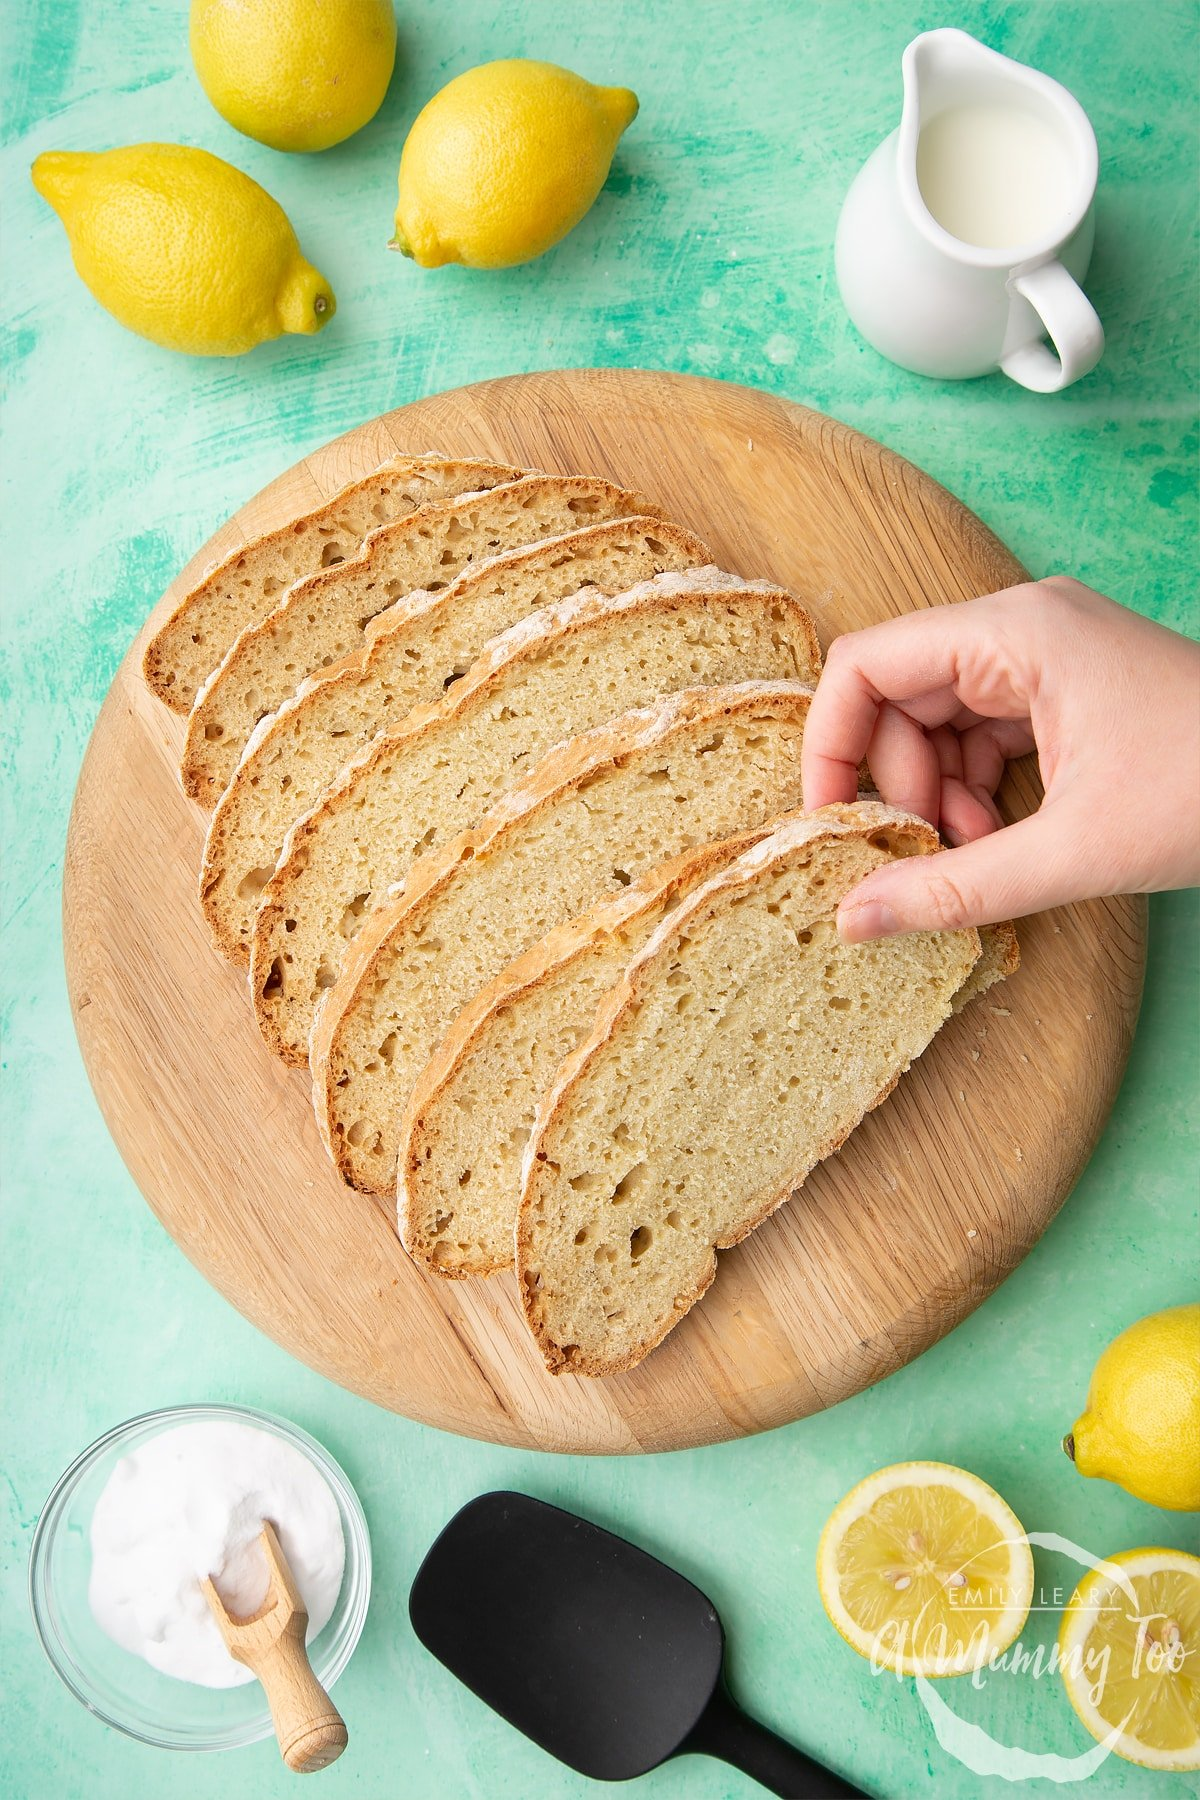 Sliced soda bread without buttermilk on a wooden board.  A hand reaches in to take a slice. Lemon, milk and bicarbonate of soda are placed around the board.